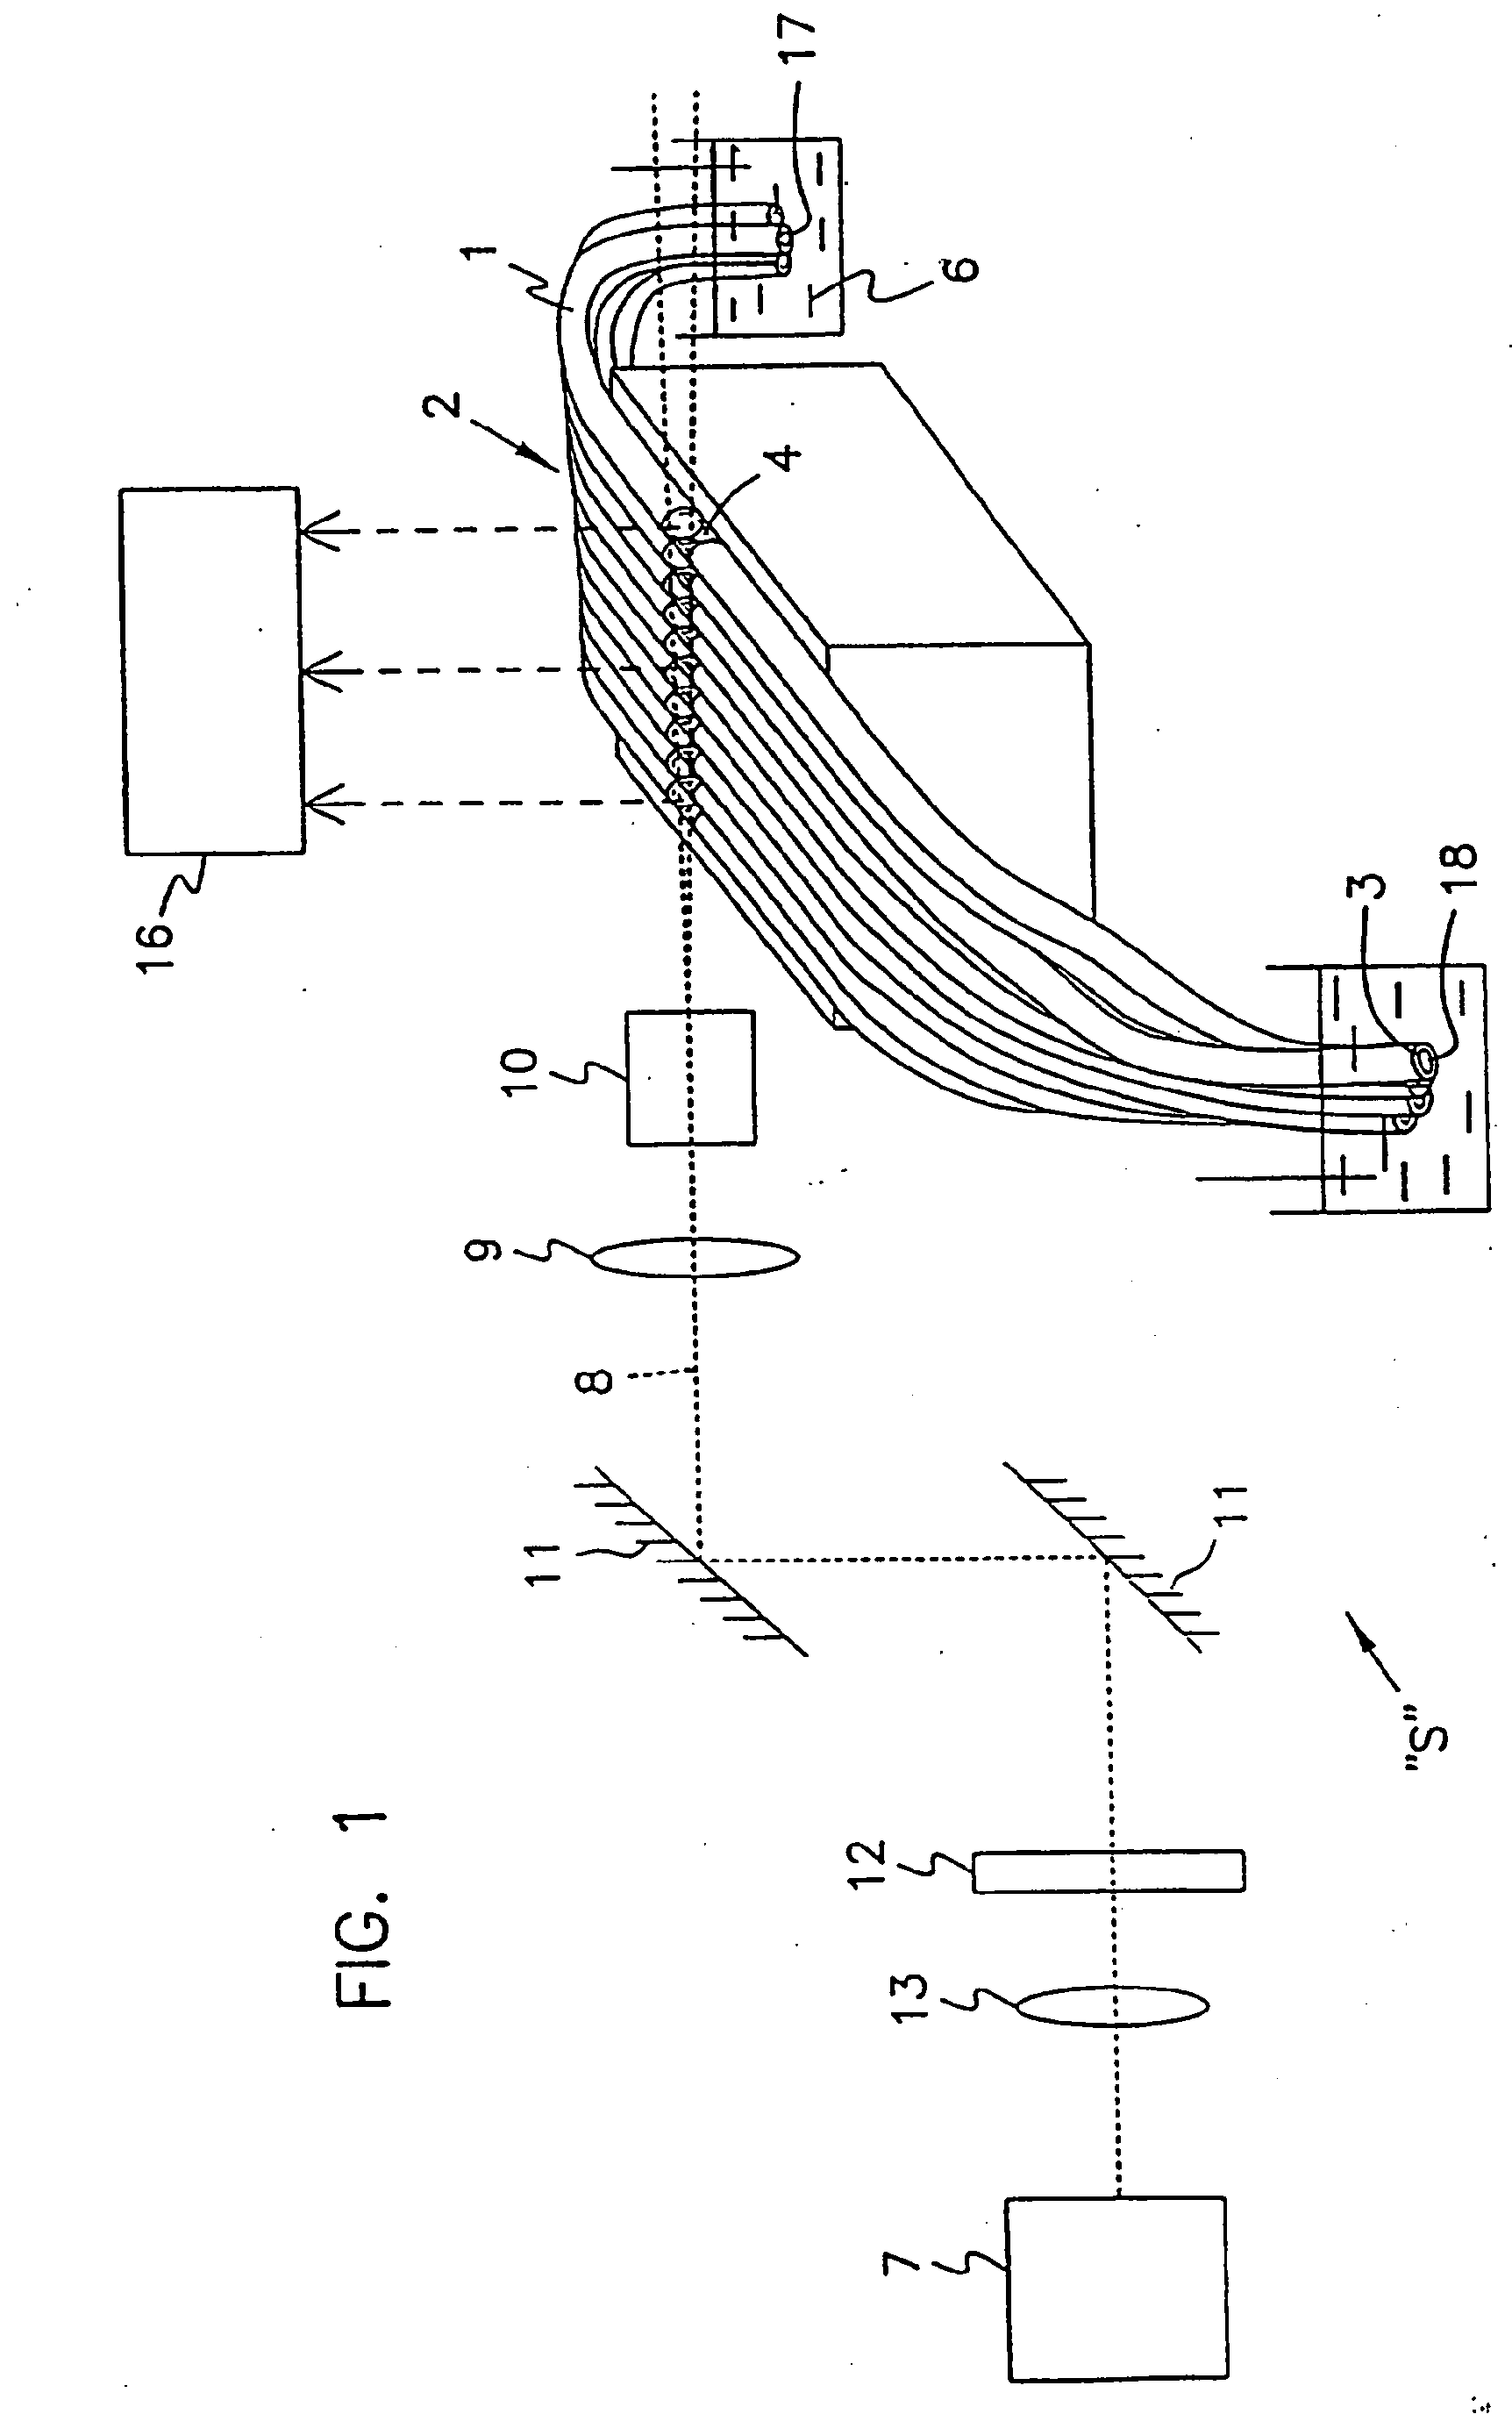 patent ep1109014b1 - multiplexed capillary electrophoresis system